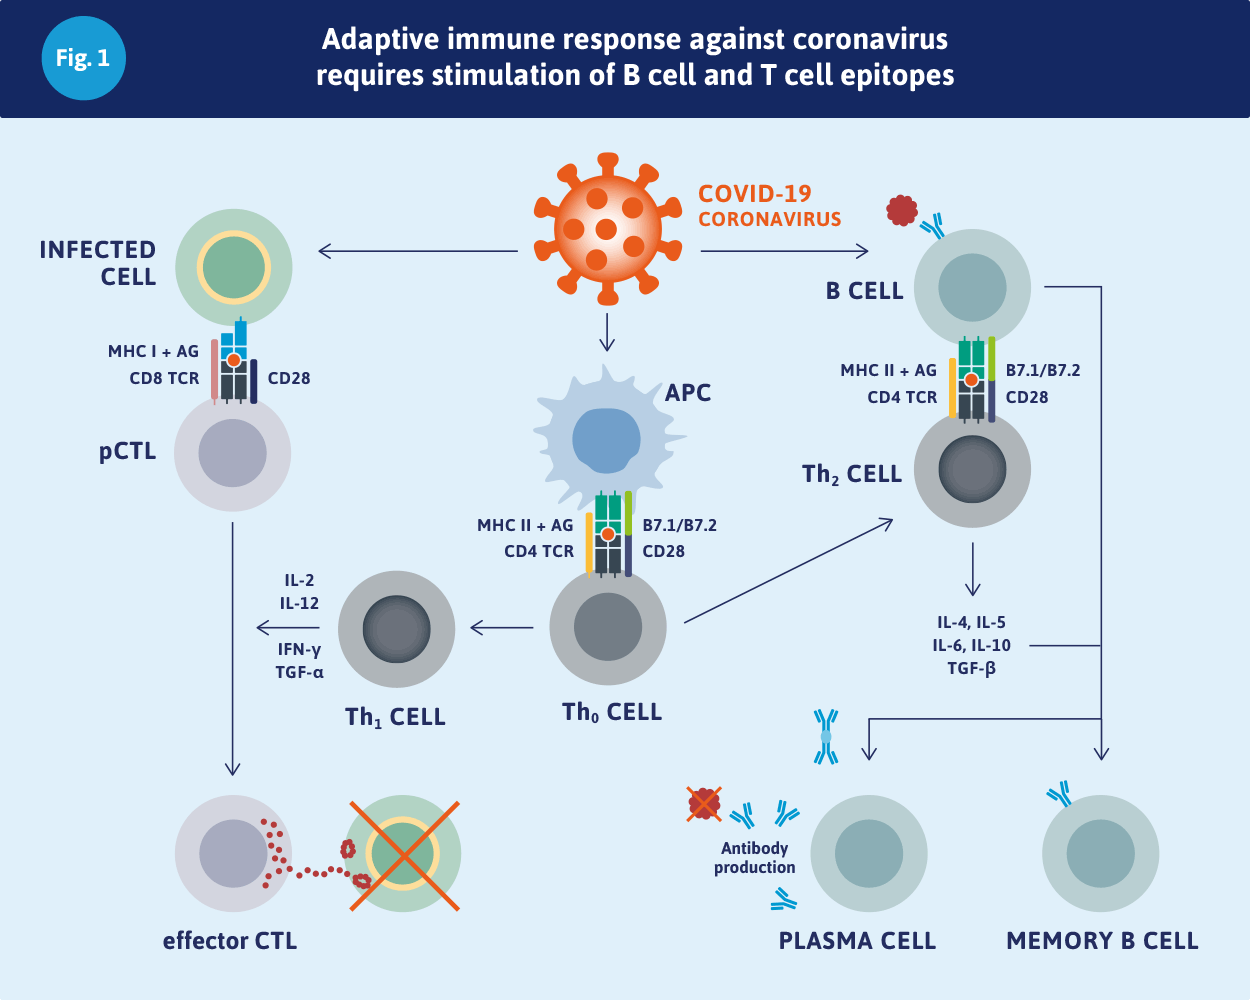 Adaptive immune response against coronavirus requires stimulation of B cell and T cell epitopes